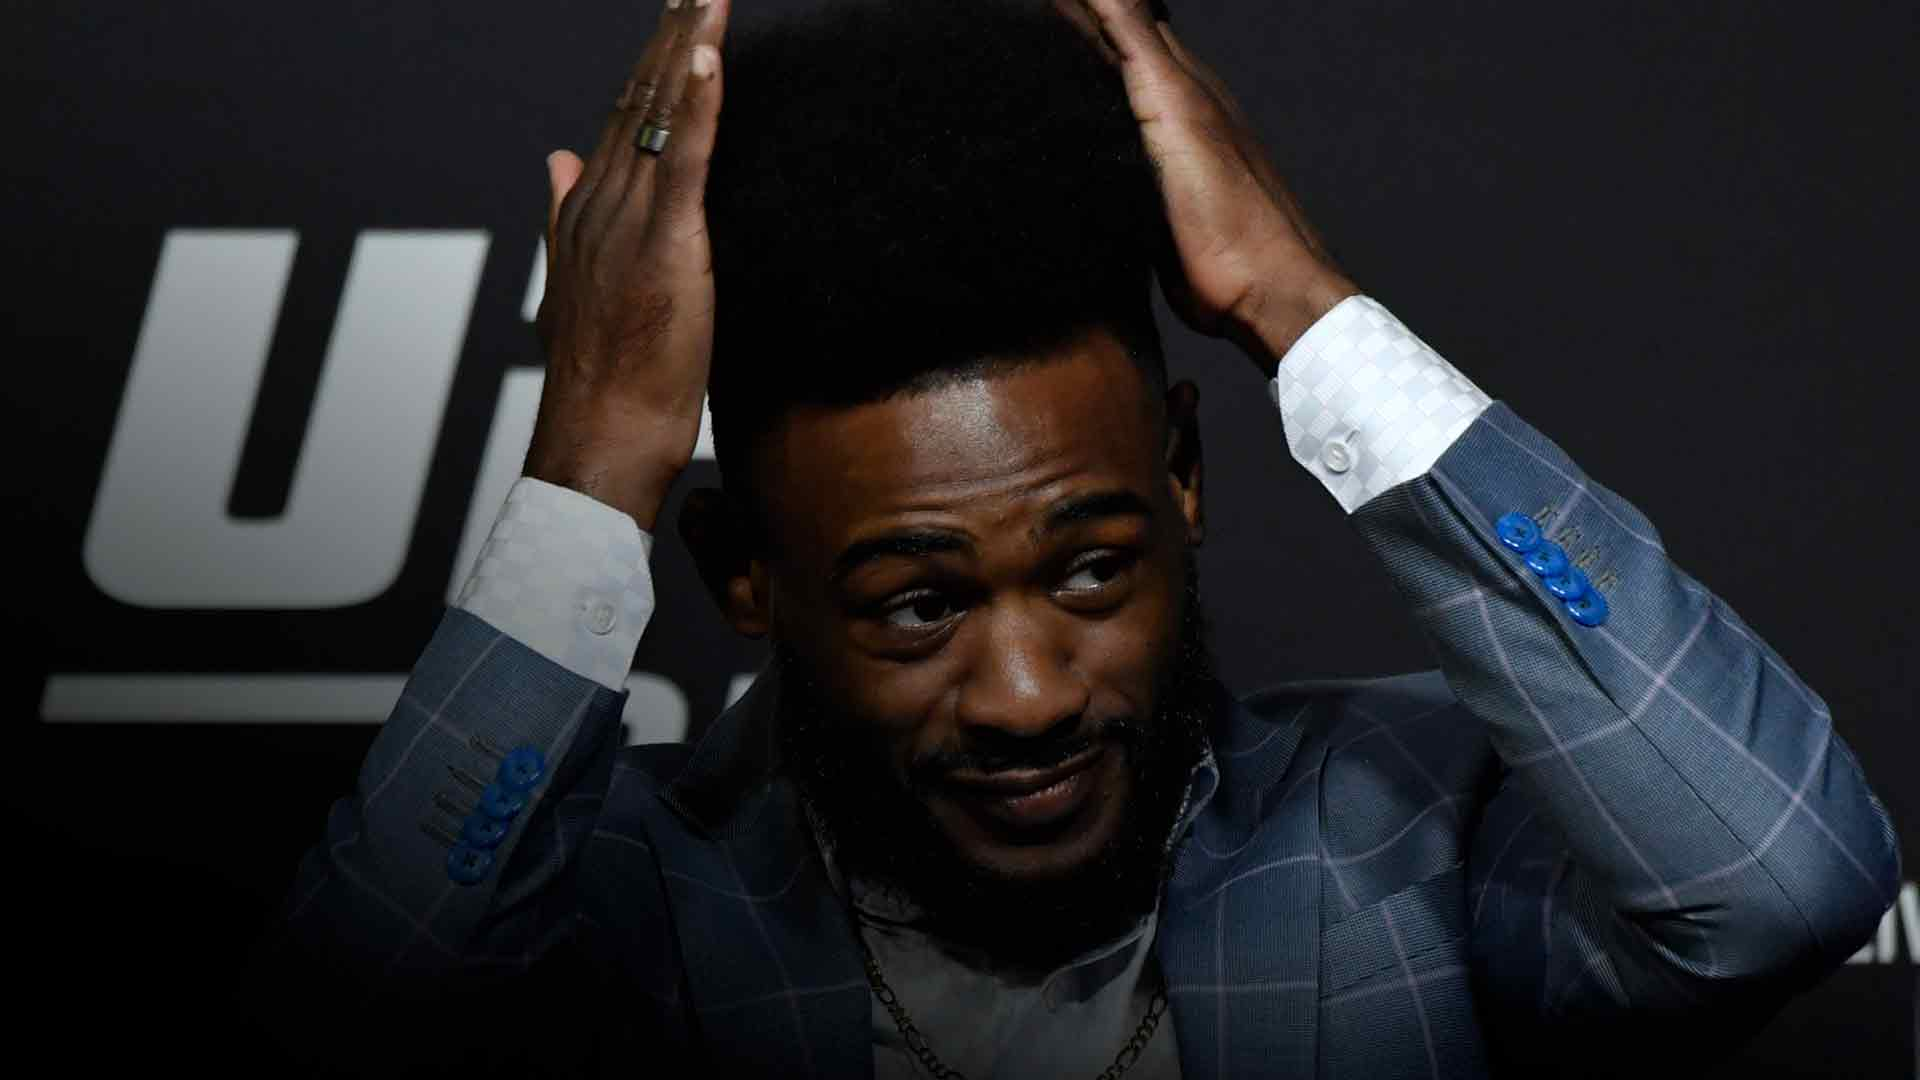 Aljamain Sterling interacts with media during the UFC 259 press conference at UFC APEX on March 04, 2021 in Las Vegas, Nevada. (Photo by Jeff Bottari/Zuffa LLC)